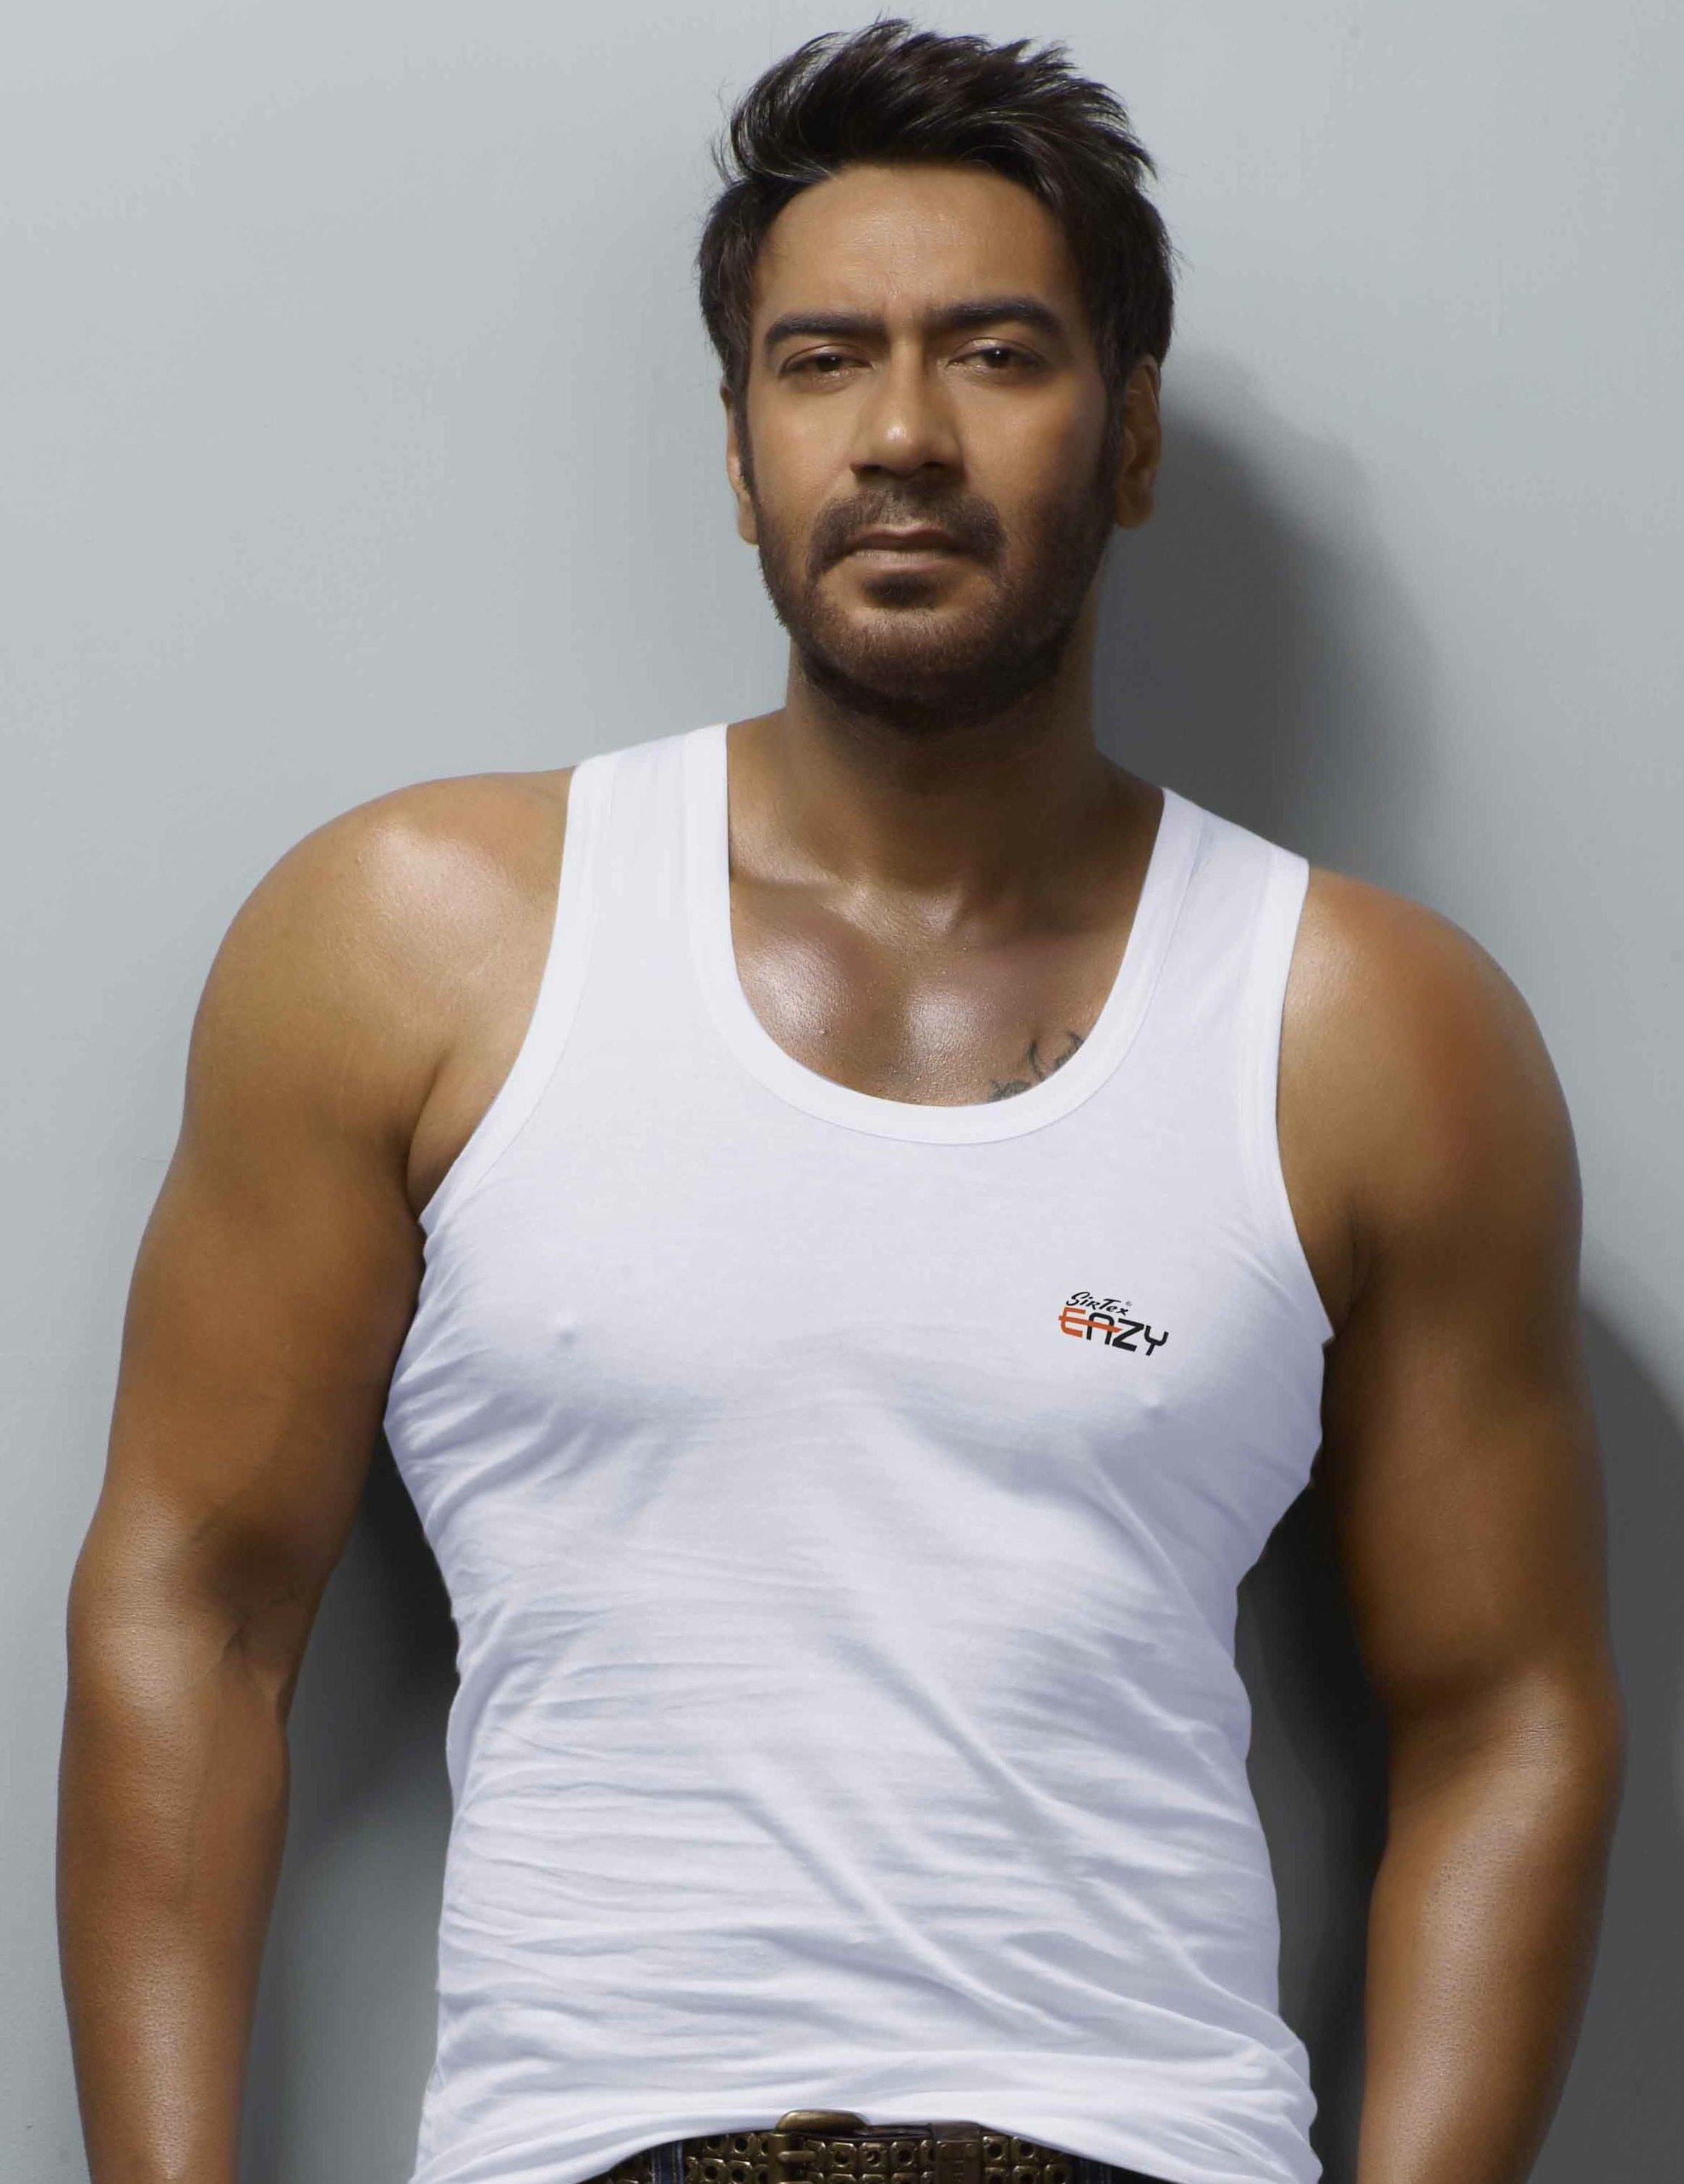 00002-Ajay Devgn Shoots For Sirtex Eazy